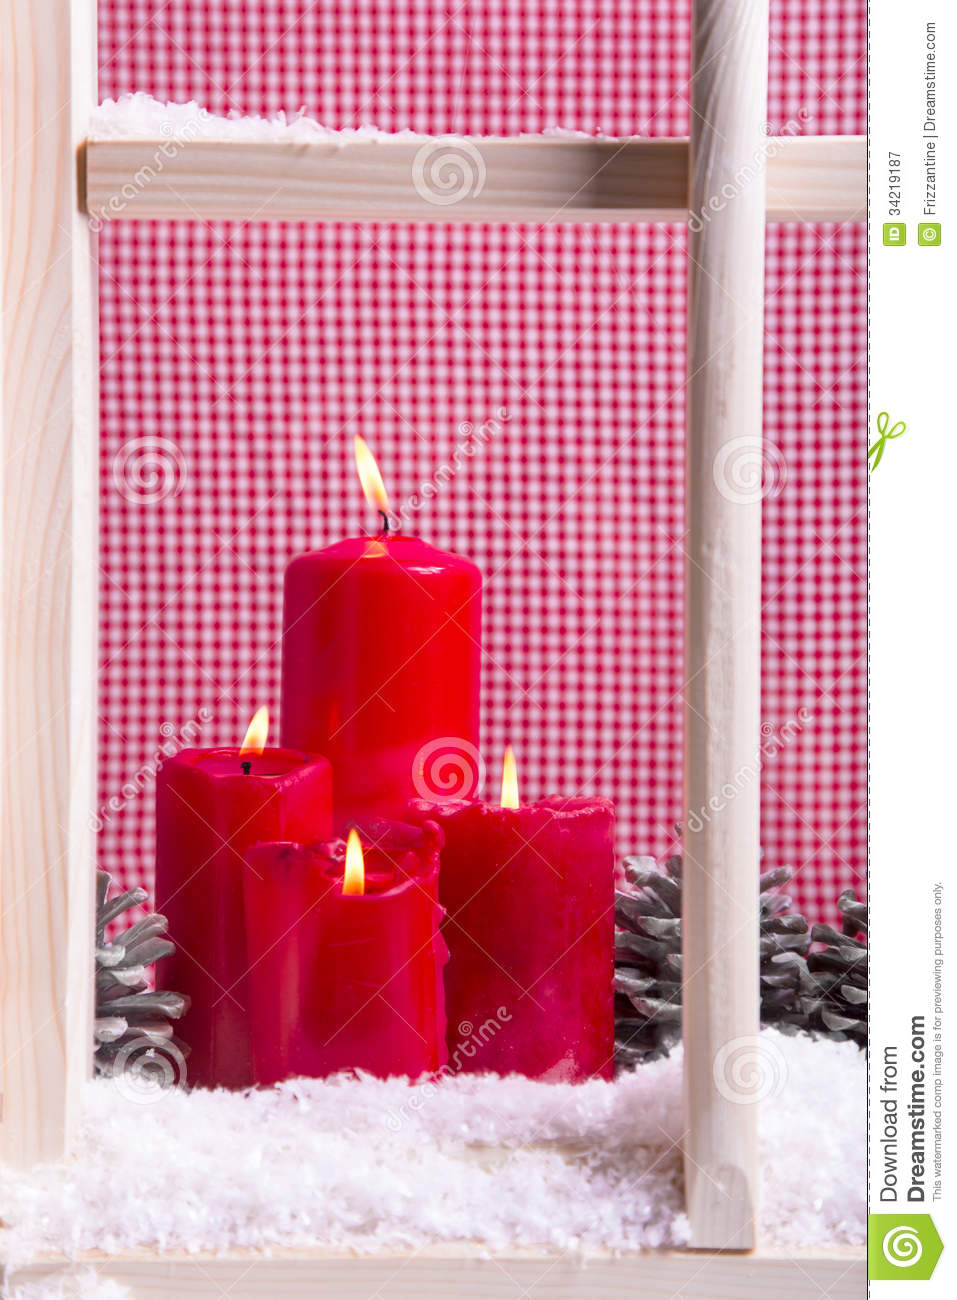 Indoor christmas window sill decoration four red candles for Indoor window christmas decorations